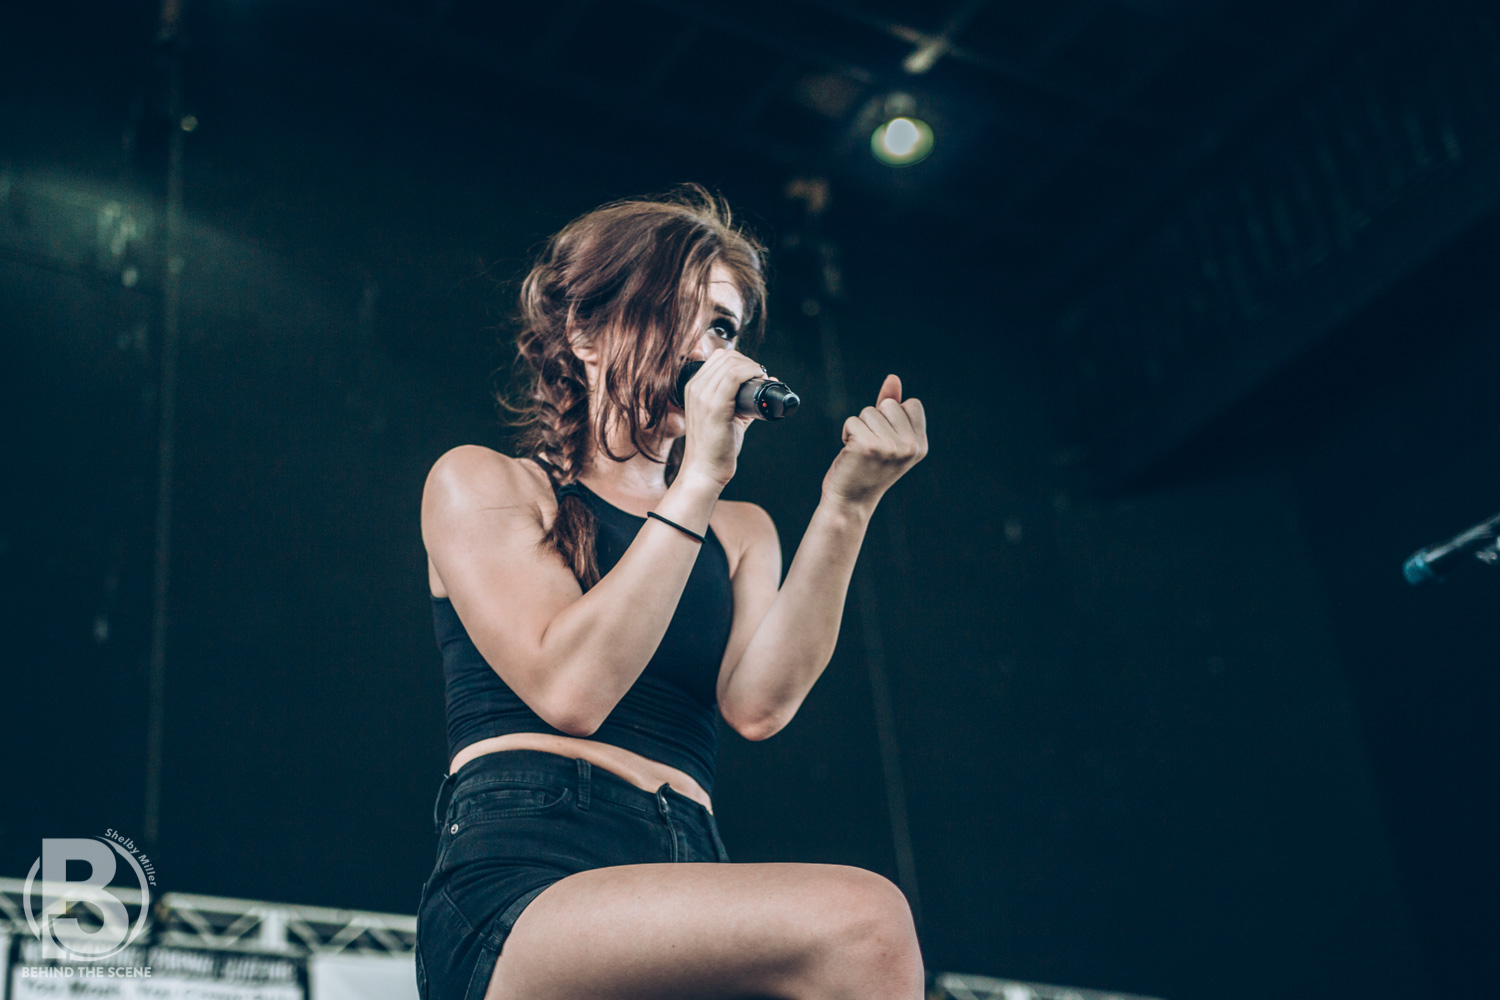 071916 Against the Current SM11.jpg